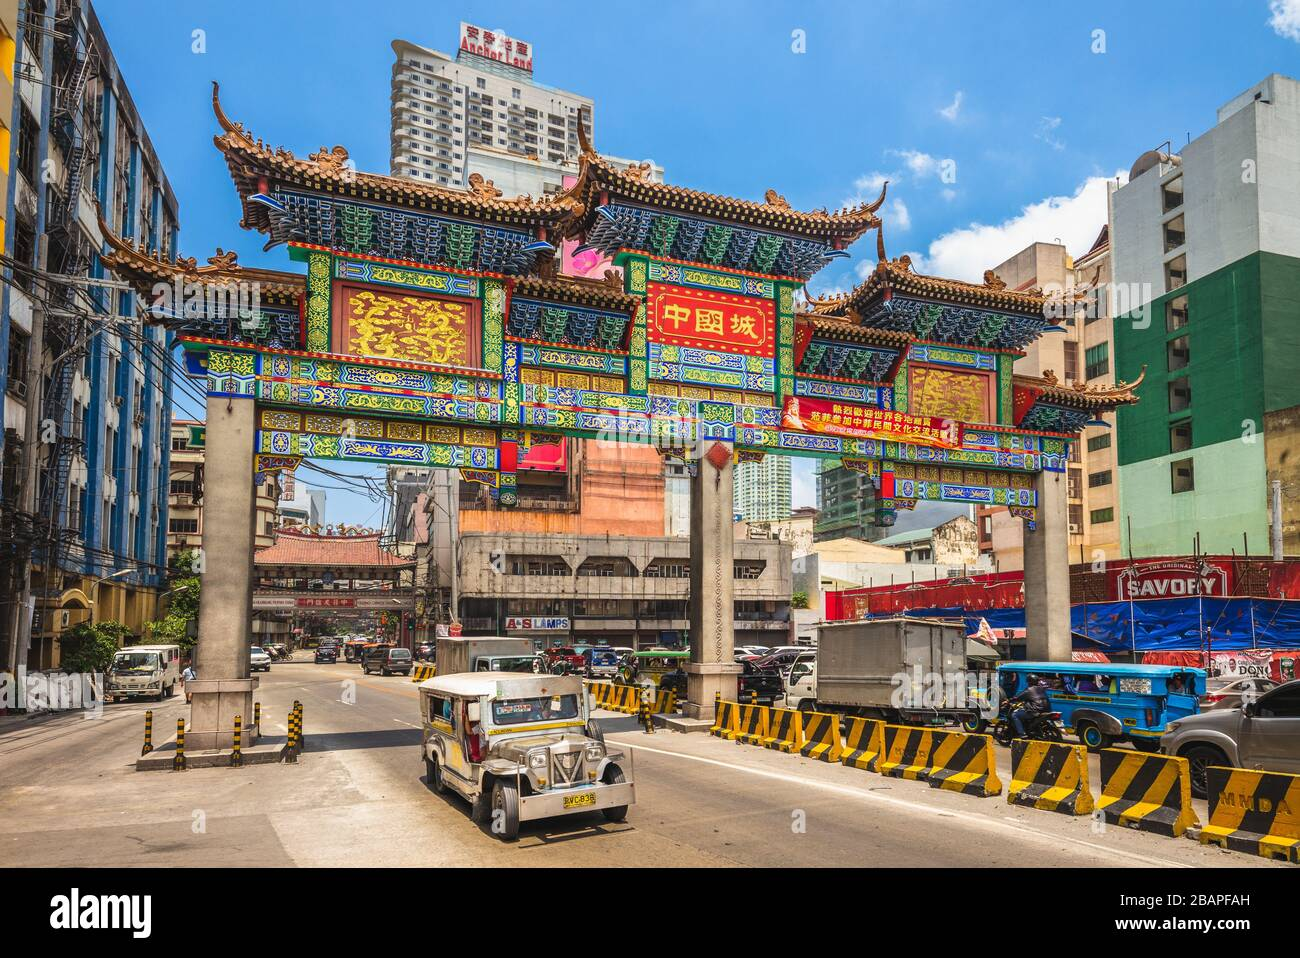 Manila, Philippines - April 8, 2019: the largest chinatown arch of the world in manila, which was inaugurated on June 23, 2015. Stock Photo